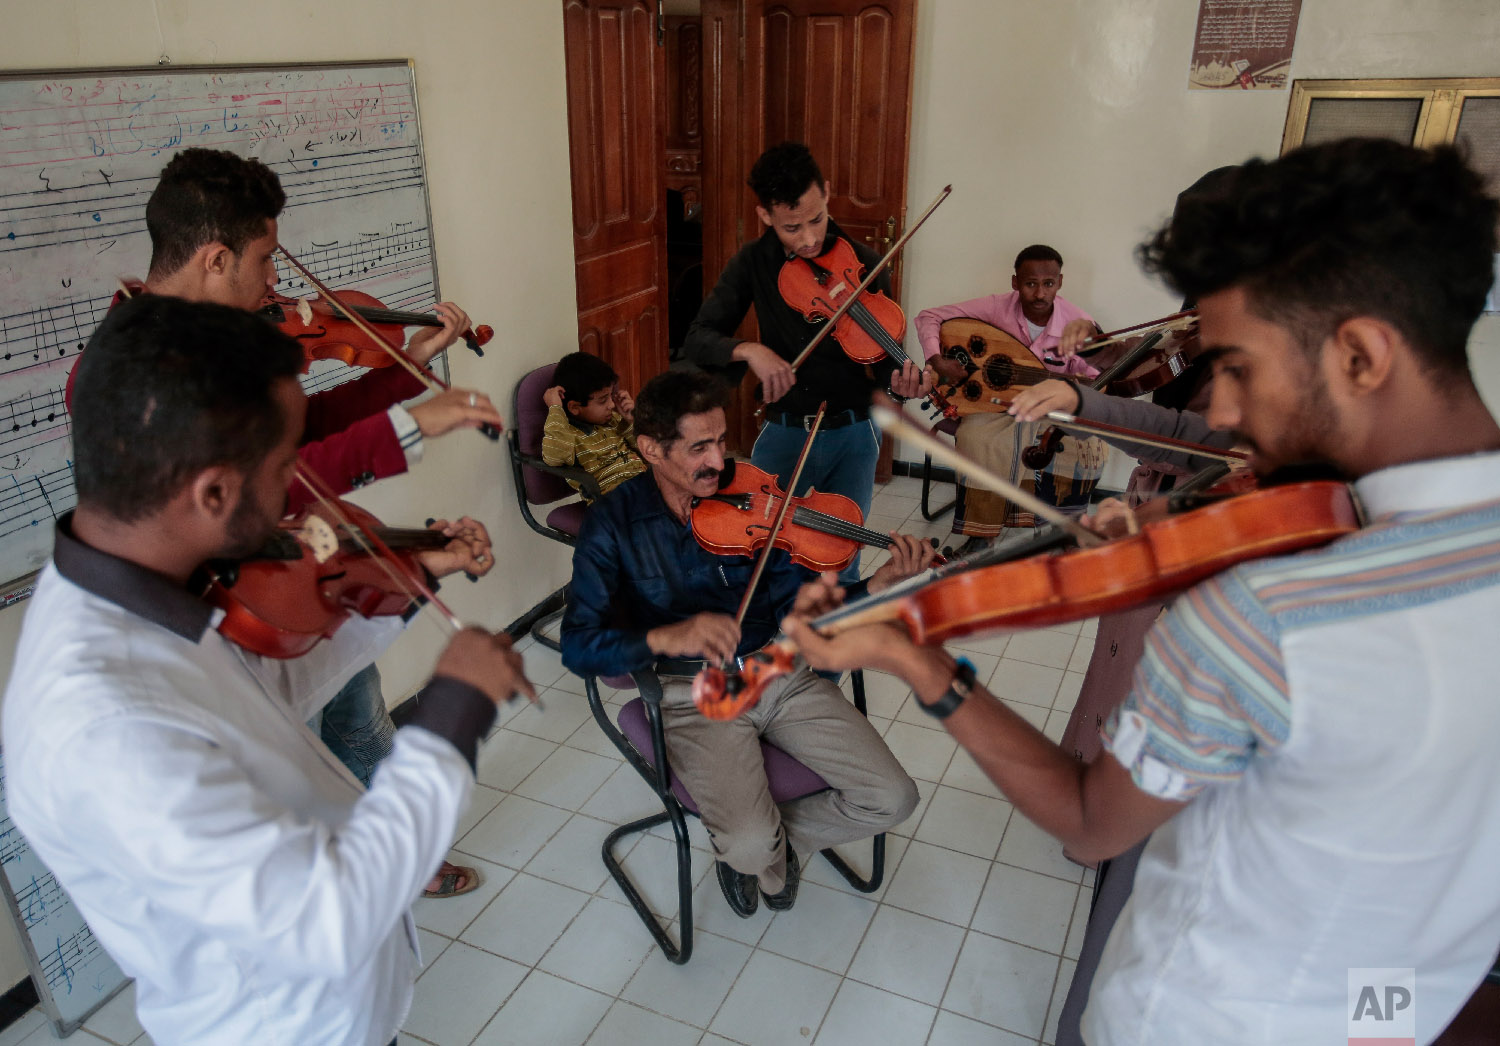 Abdullah El-Deb'y, center, teaches his students during a music class at the Cultural Centre in Sanaa, Yemen on Sunday, April 8, 2018.(AP Photo/Hani Mohammed)